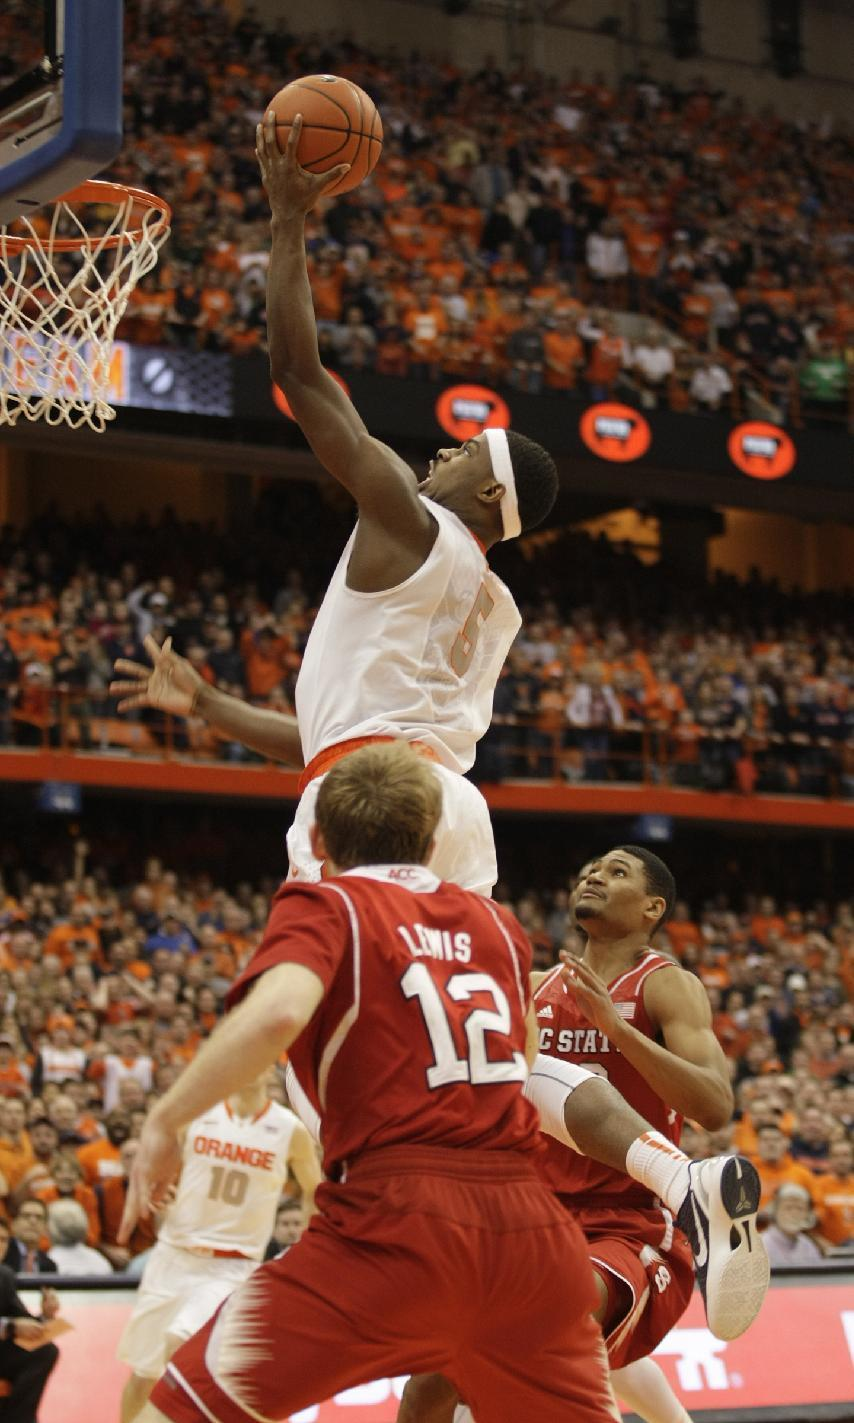 CORRECTS TO SECOND HALF, INSTEAD OF FIRST - Syracuse's C.J. Fair, top, shoots what became the winning basket against North Carolina State in the second half of an NCAA college basketball game in Syracuse, N.Y., Saturday, Feb. 15, 2014. Goaltending was called against North Carolina State's Ralston Turner on the play. Syracuse won 56-55. (AP Photo/Nick Lisi)